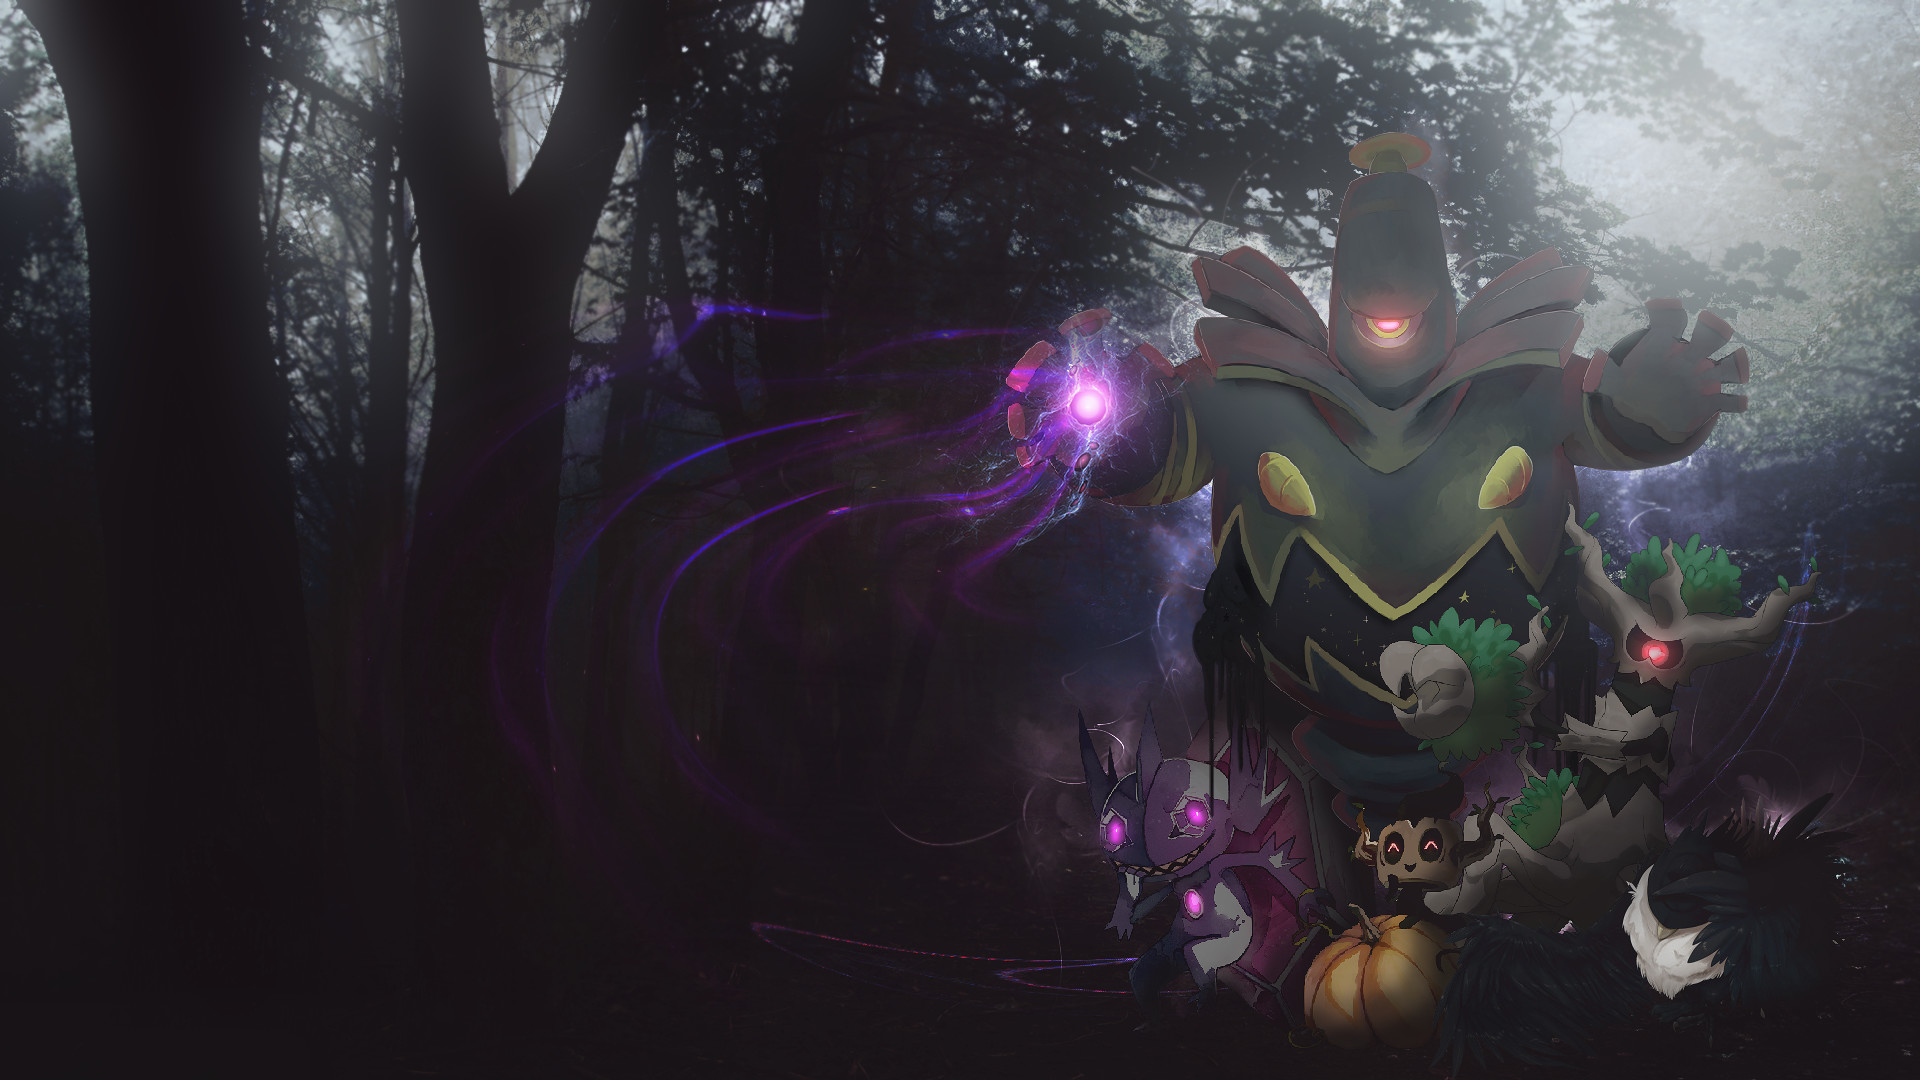 Ghost pokemon wallpapers 74 background pictures - Pokemon ghost wallpaper ...